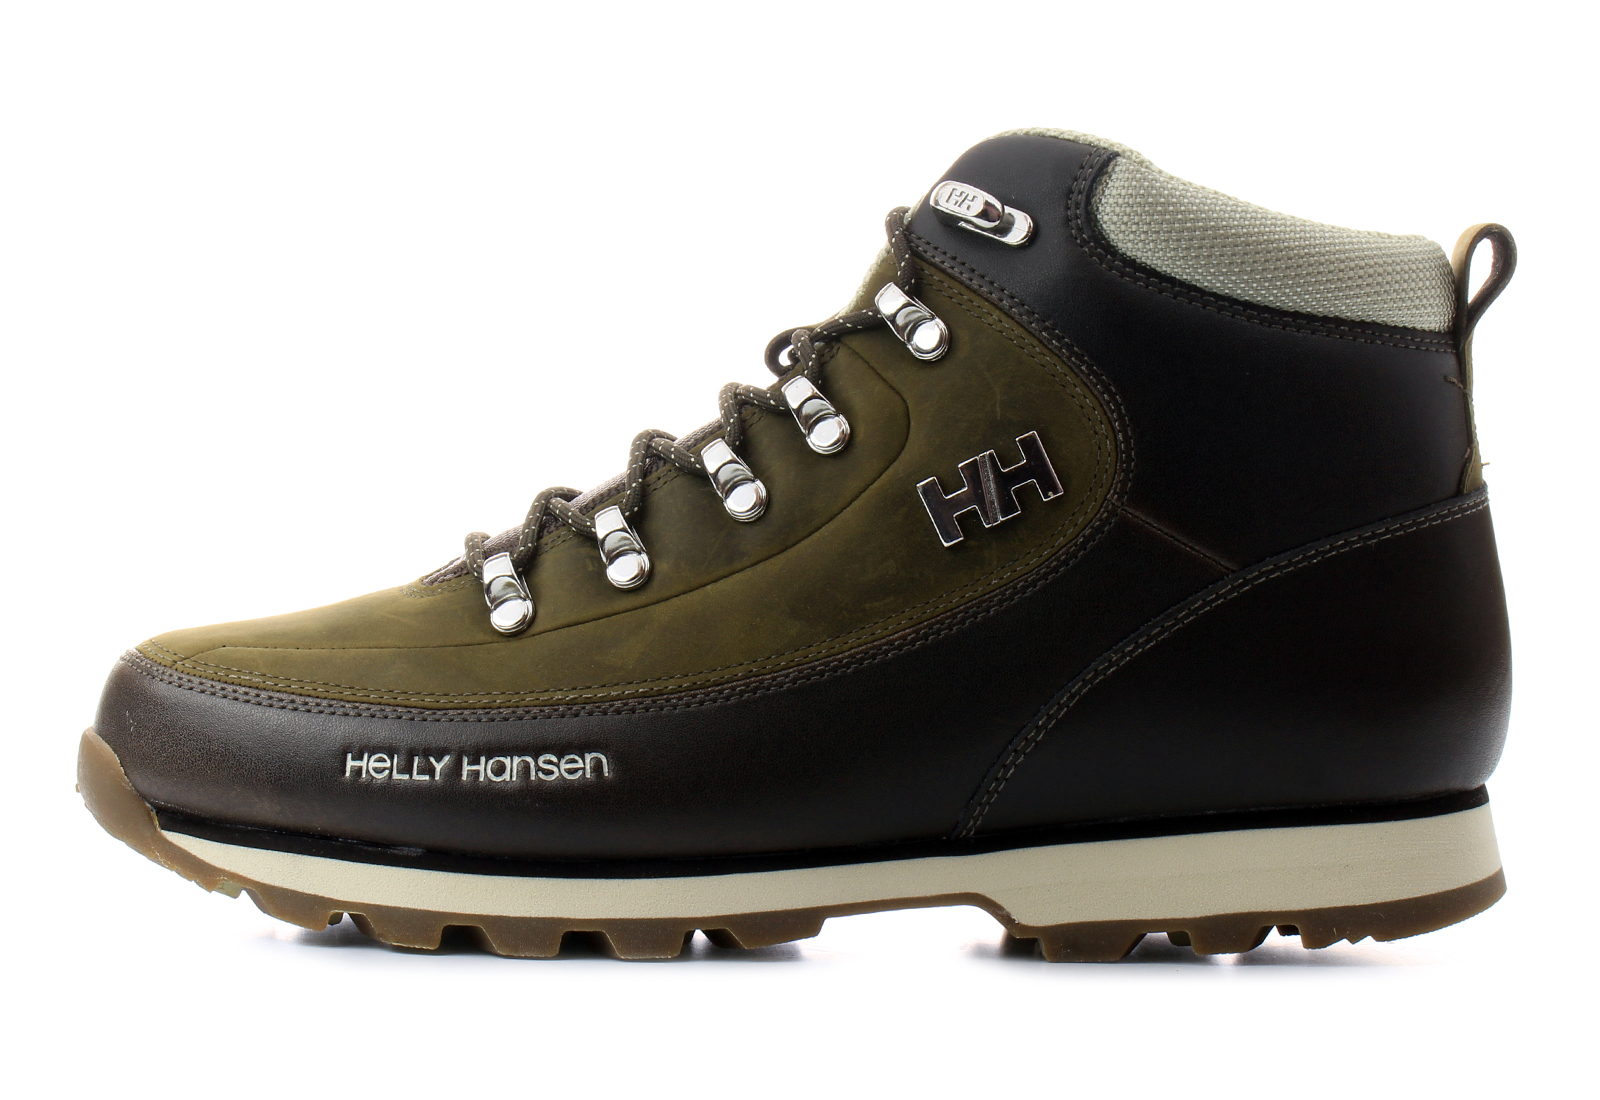 Helly Hansen Boots - W The Forester - 10516-708 - Online shop for ... 0c6f28466f